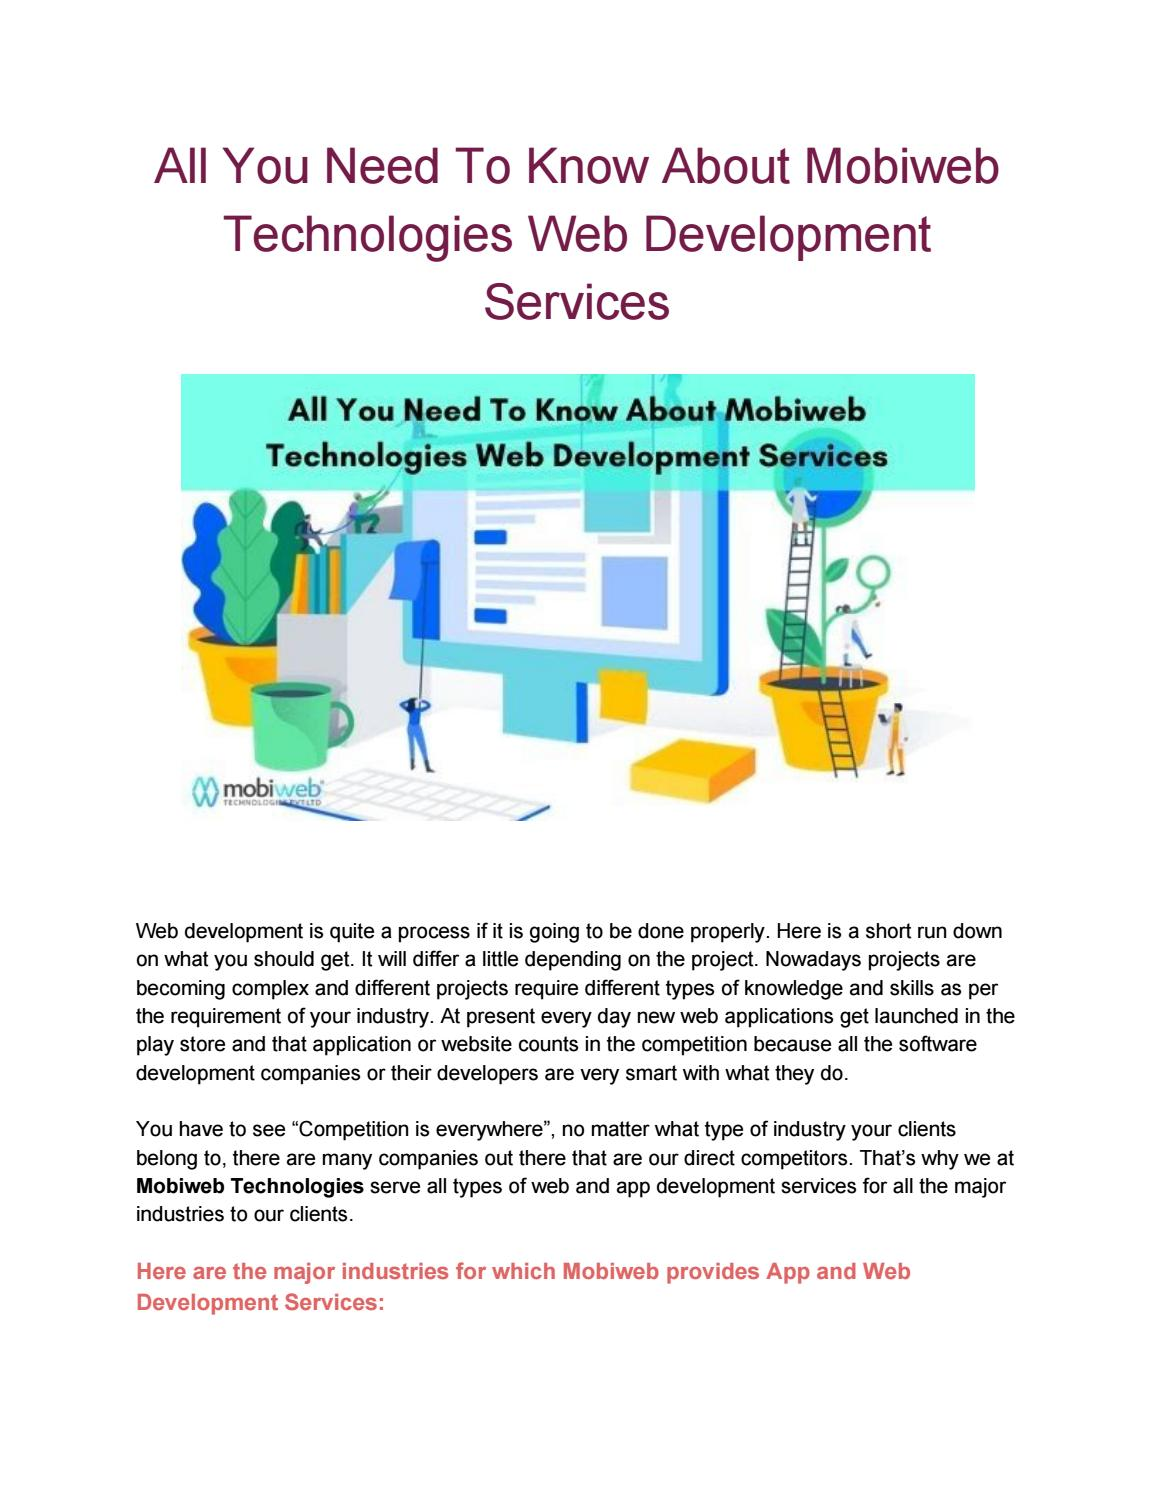 All You Need To Know About Mobiweb Technologies Web Development Services